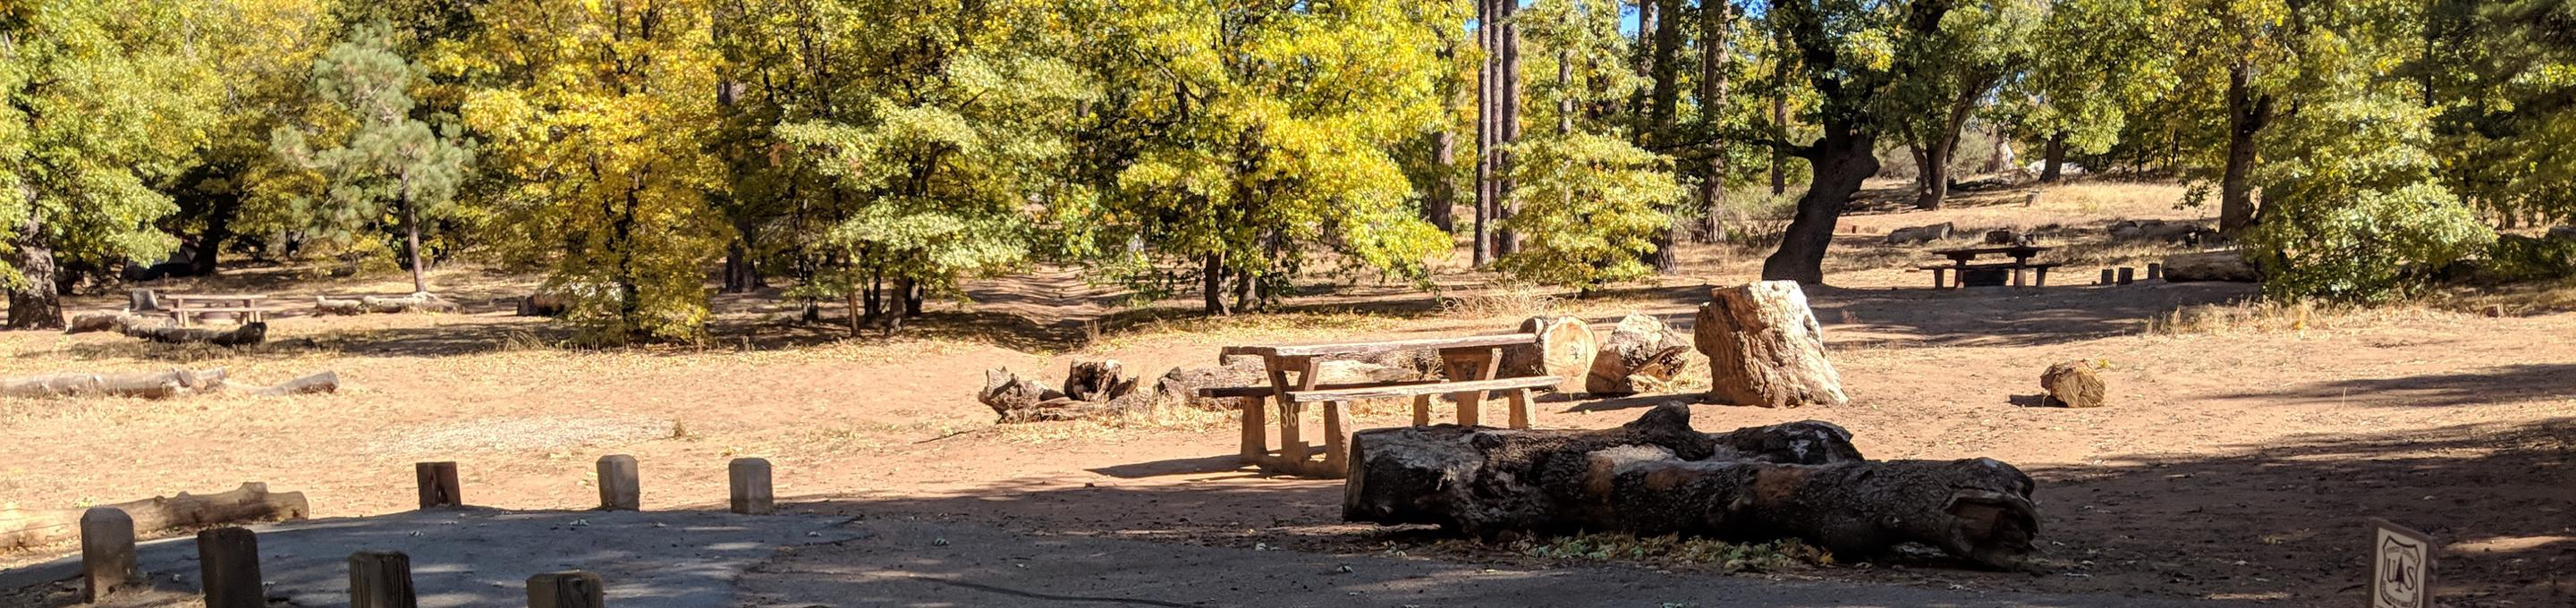 Laguna Campground site #36 wooded camping space view and picnic area.